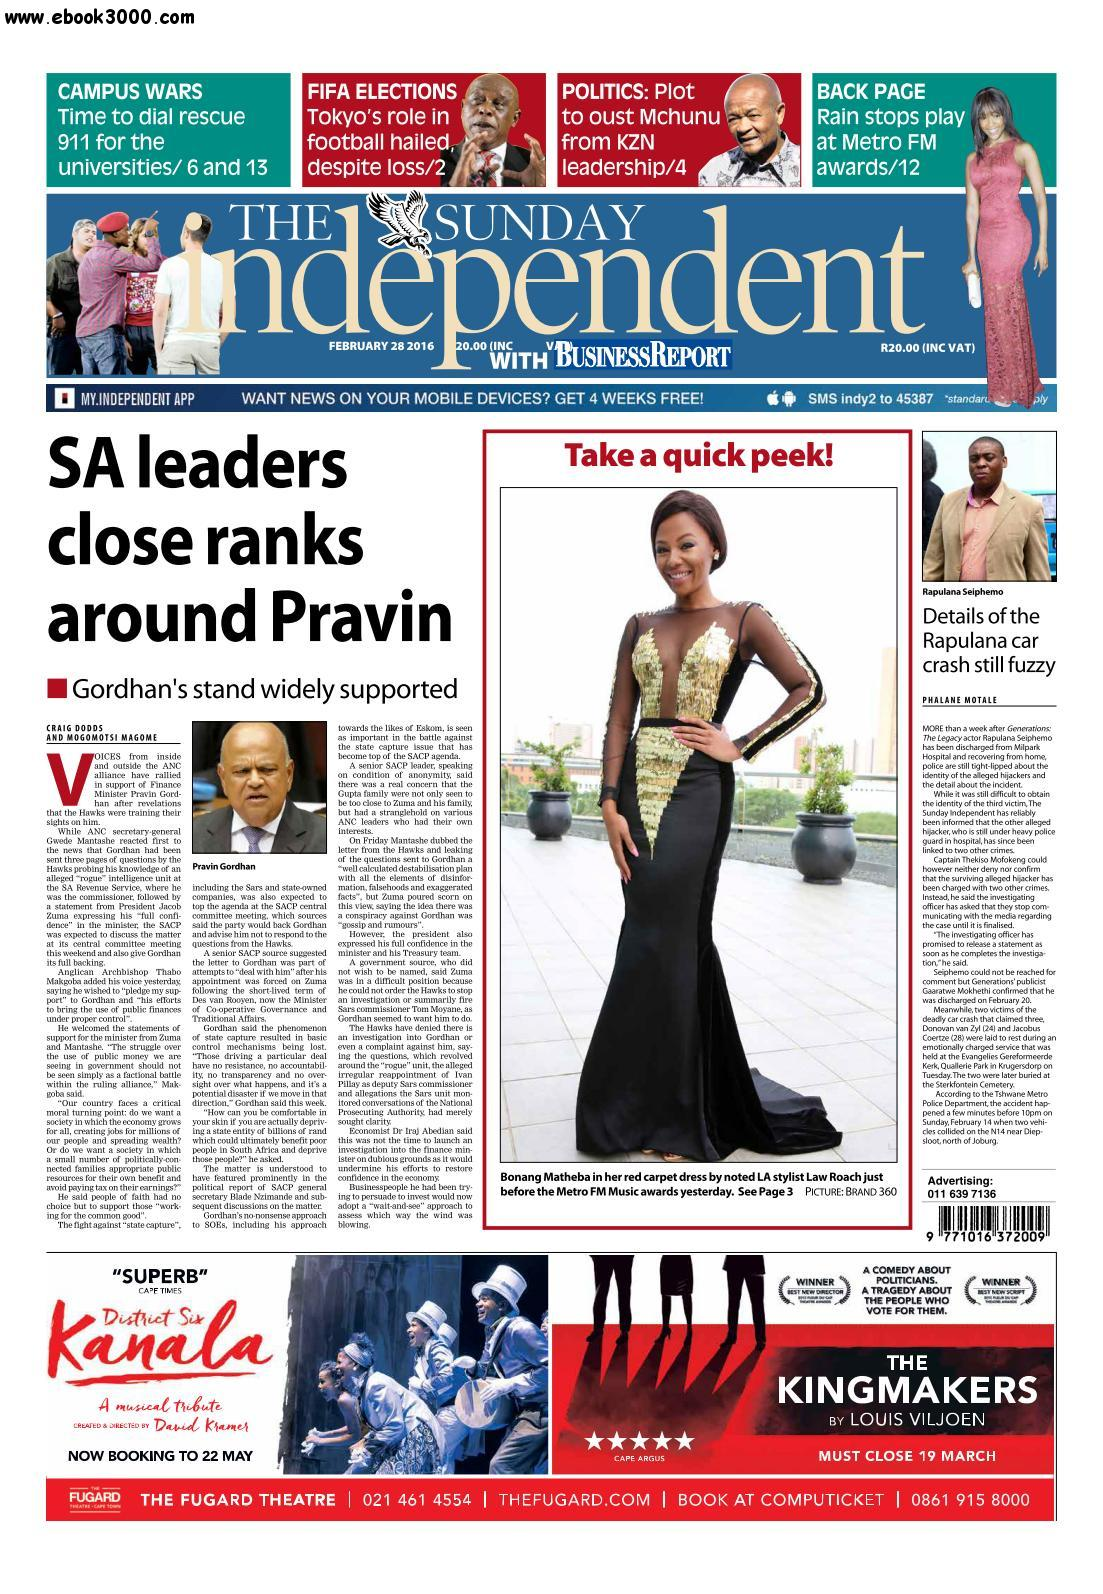 The Sunday Independent - 28 February 2016 free download